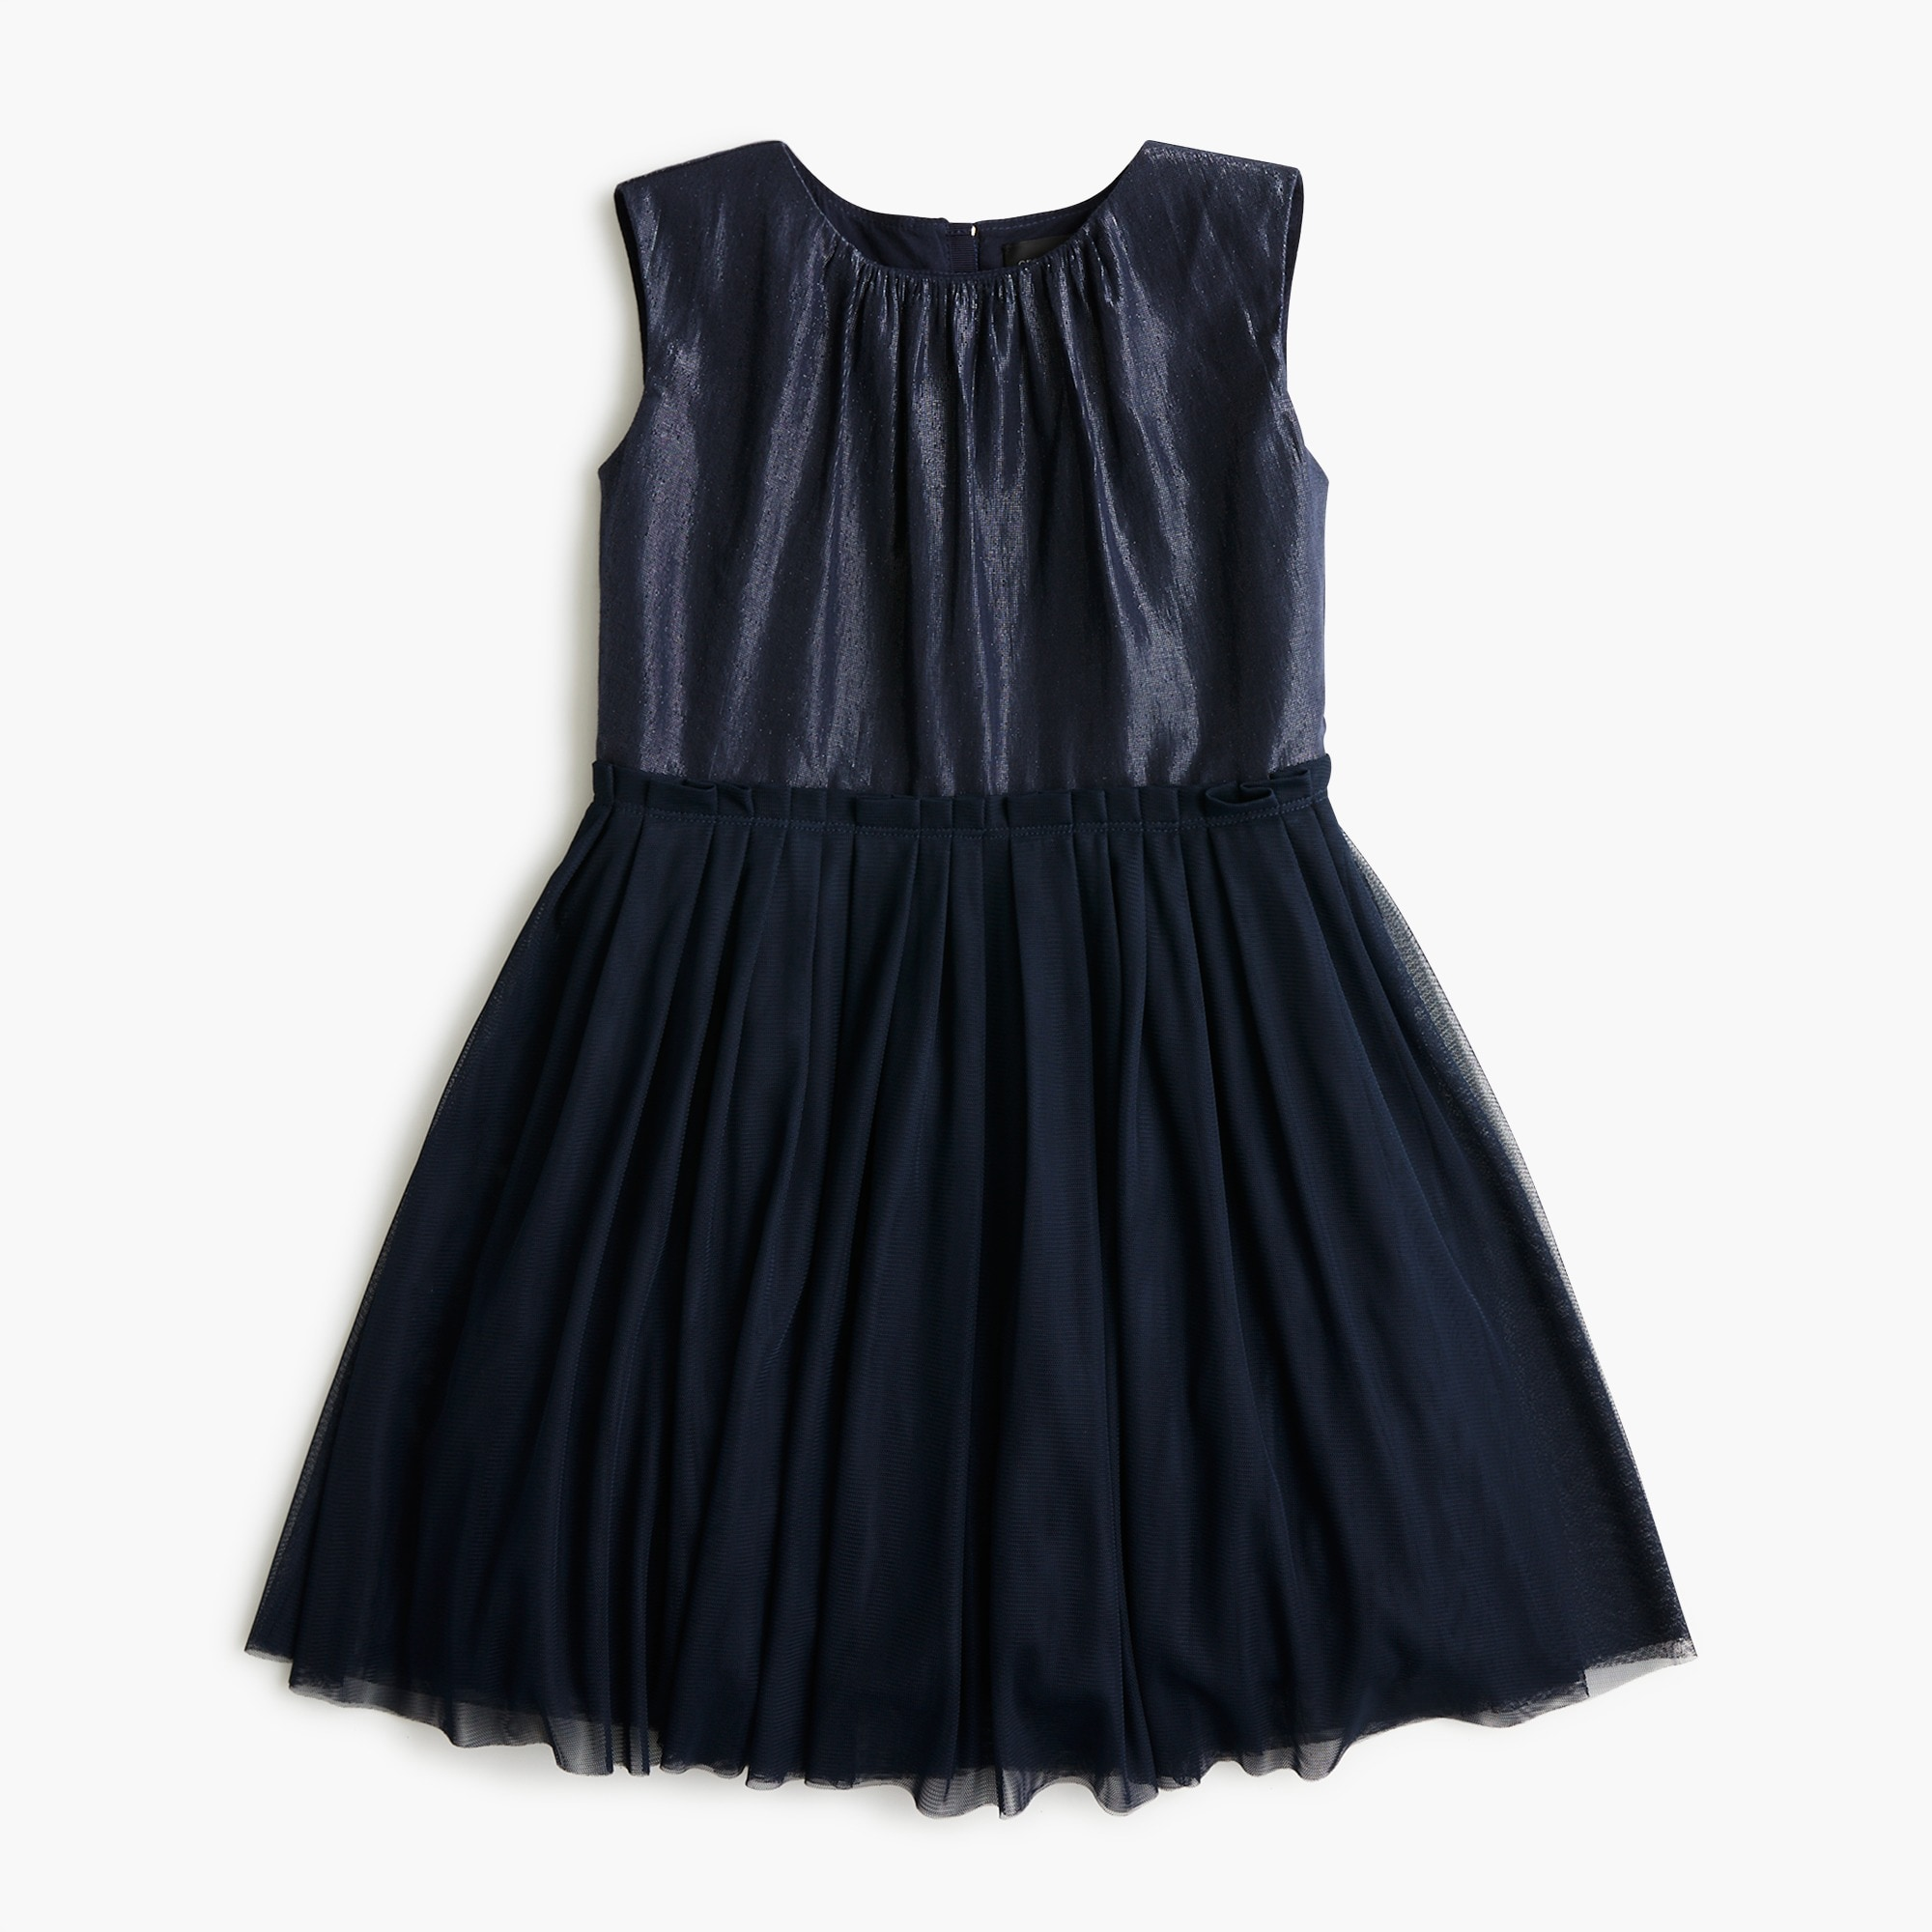 Image 2 for Girls' tulle-skirted dress